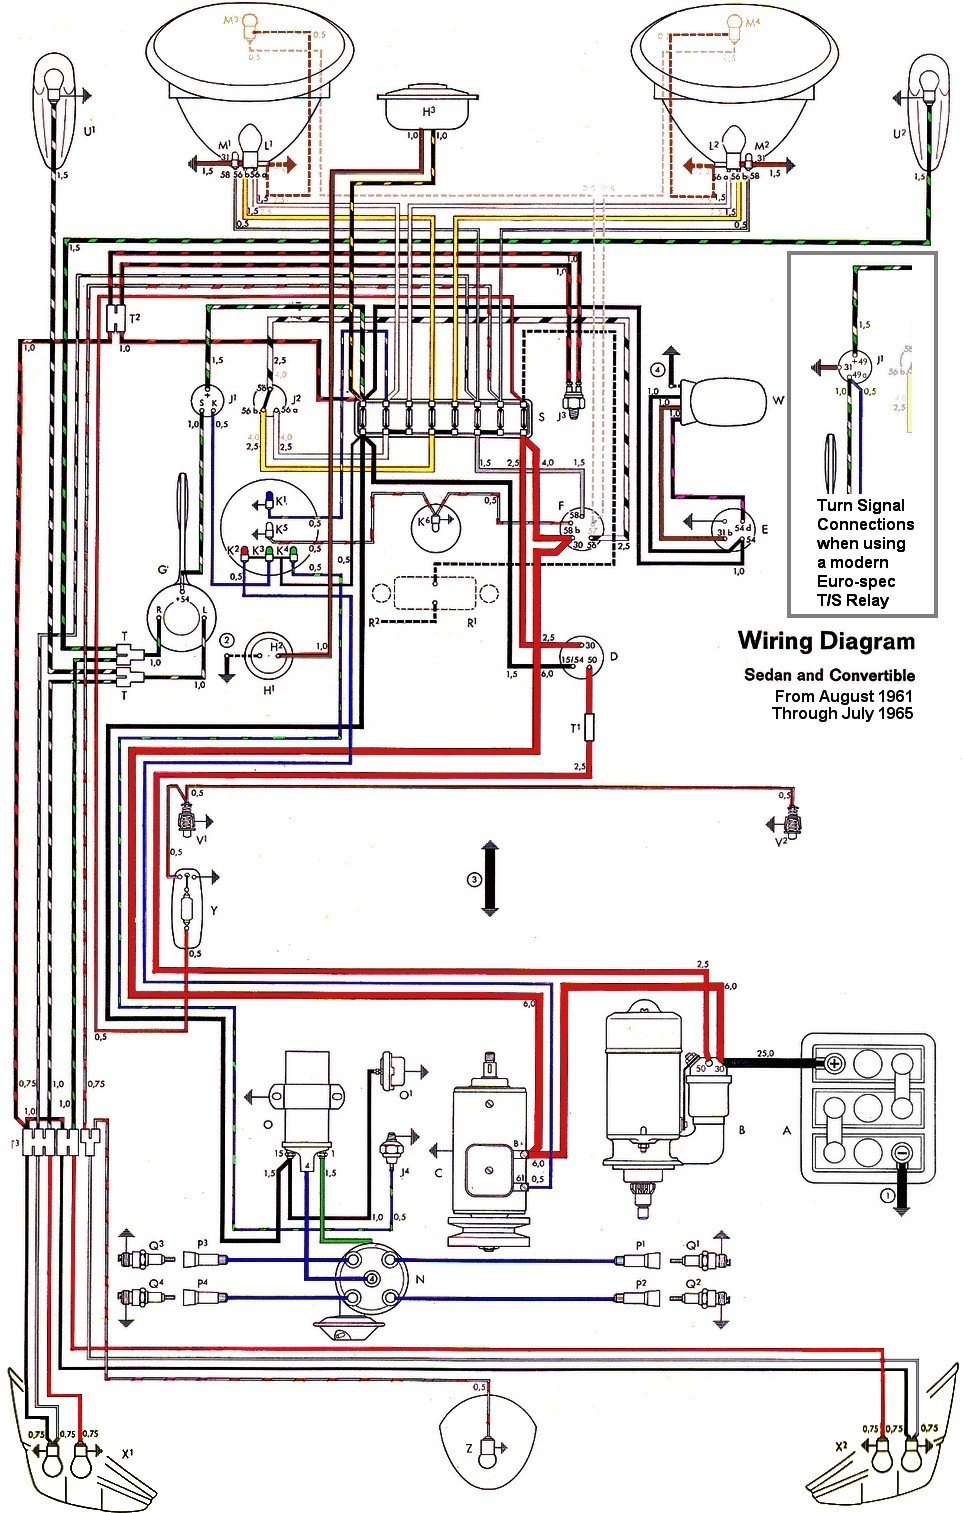 bug_62 65withinset thesamba com type 1 wiring diagrams 1973 vw wiring diagram at reclaimingppi.co